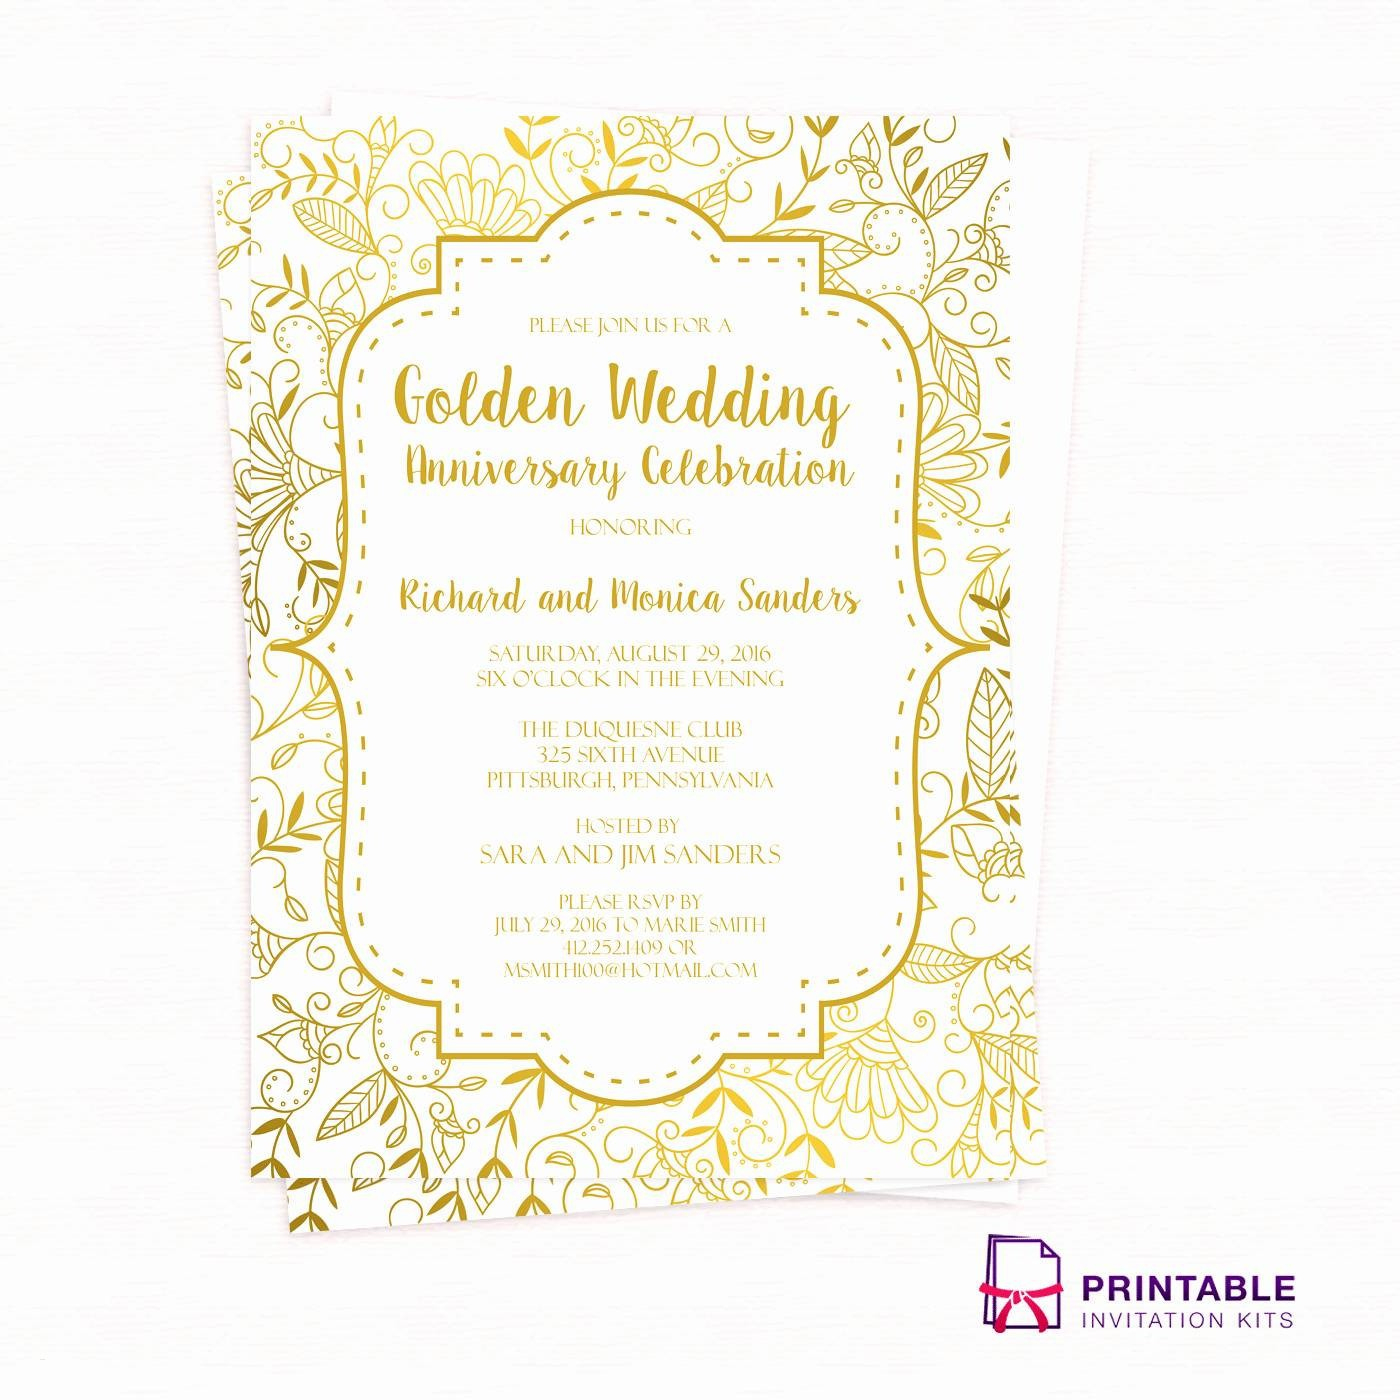 Inspirational Printable 40Th Wedding Anniversary Invitations - Free Printable 40Th Anniversary Invitations